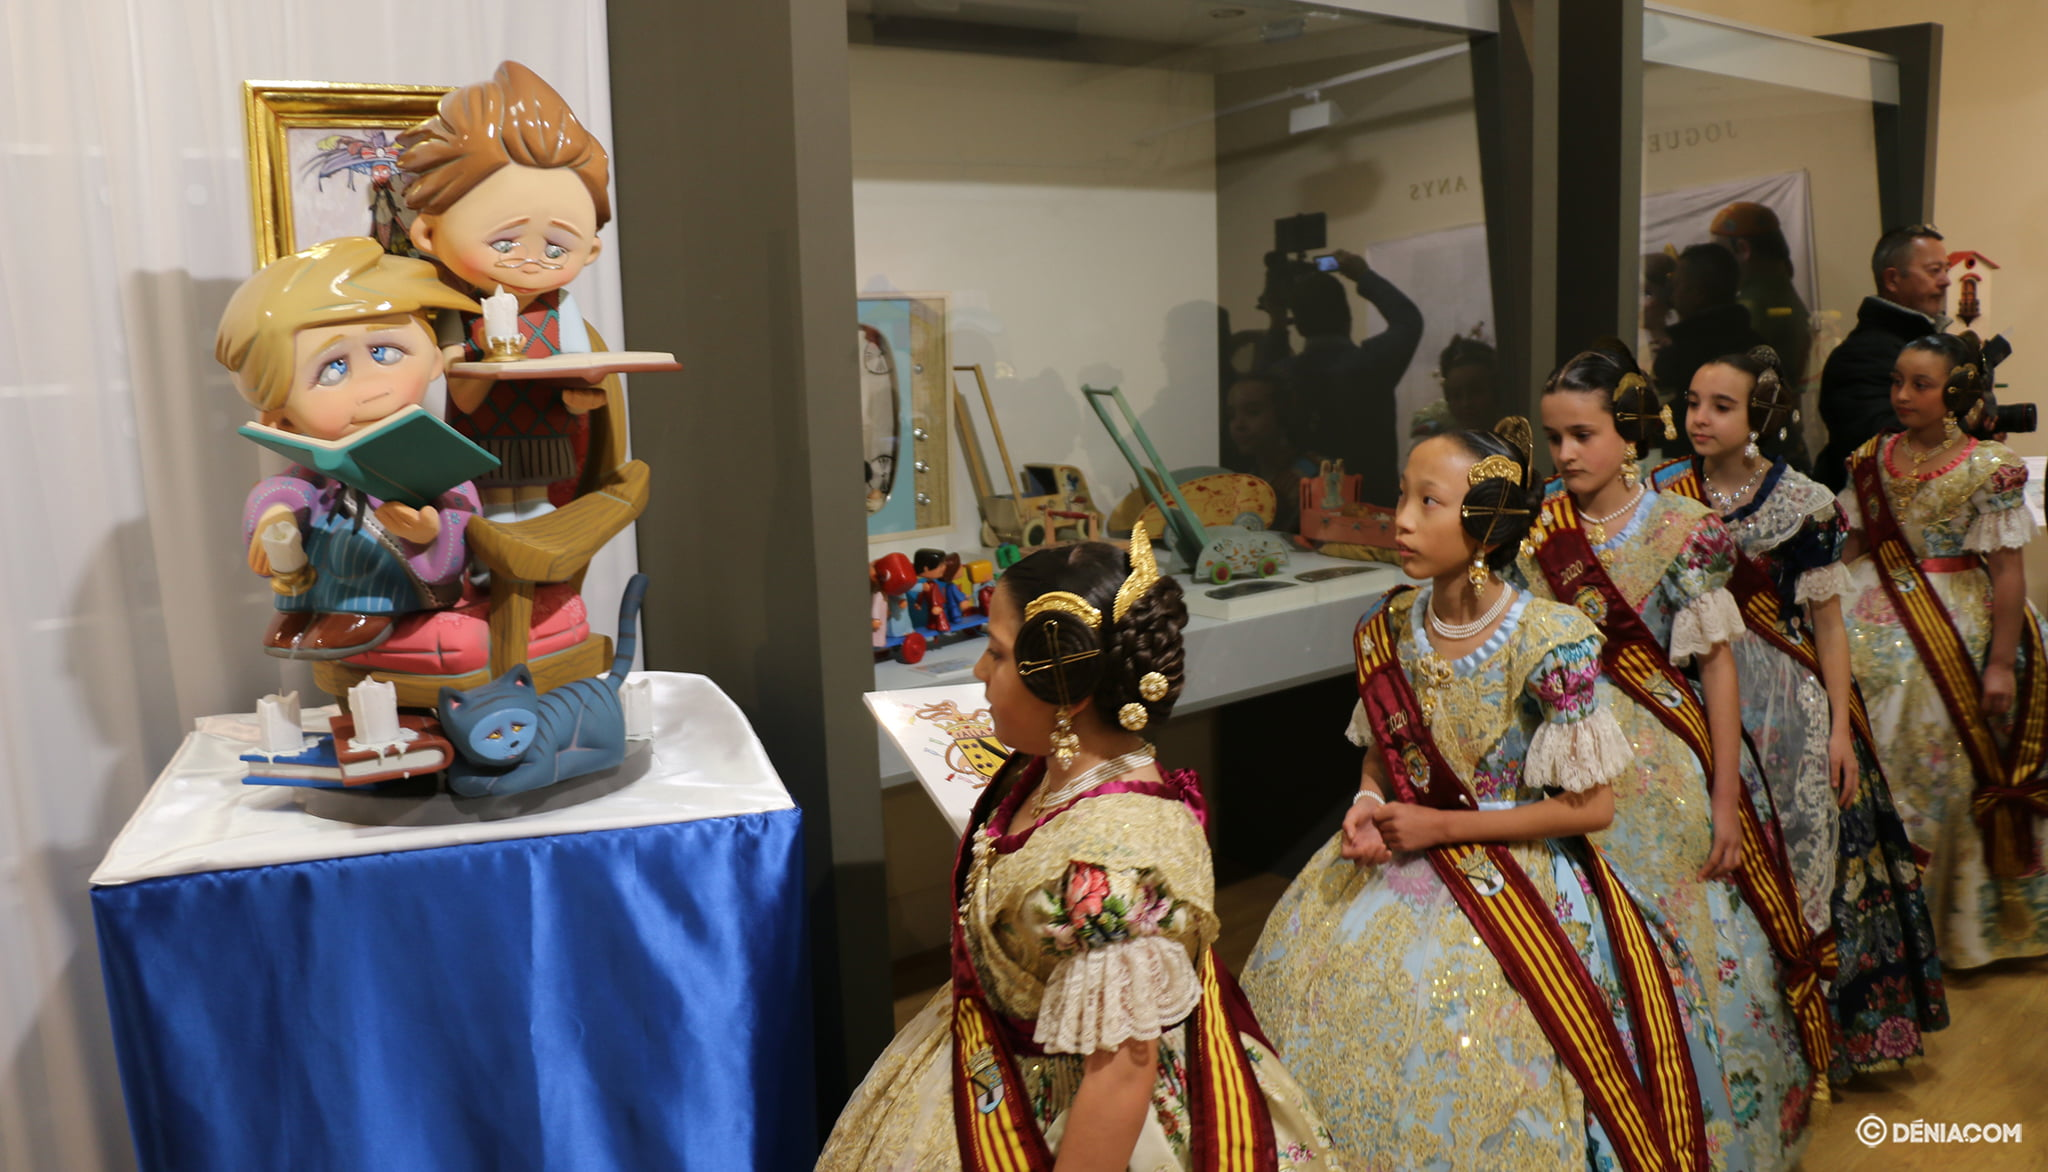 The children's honor court visits the Ninot 2020 Exhibition